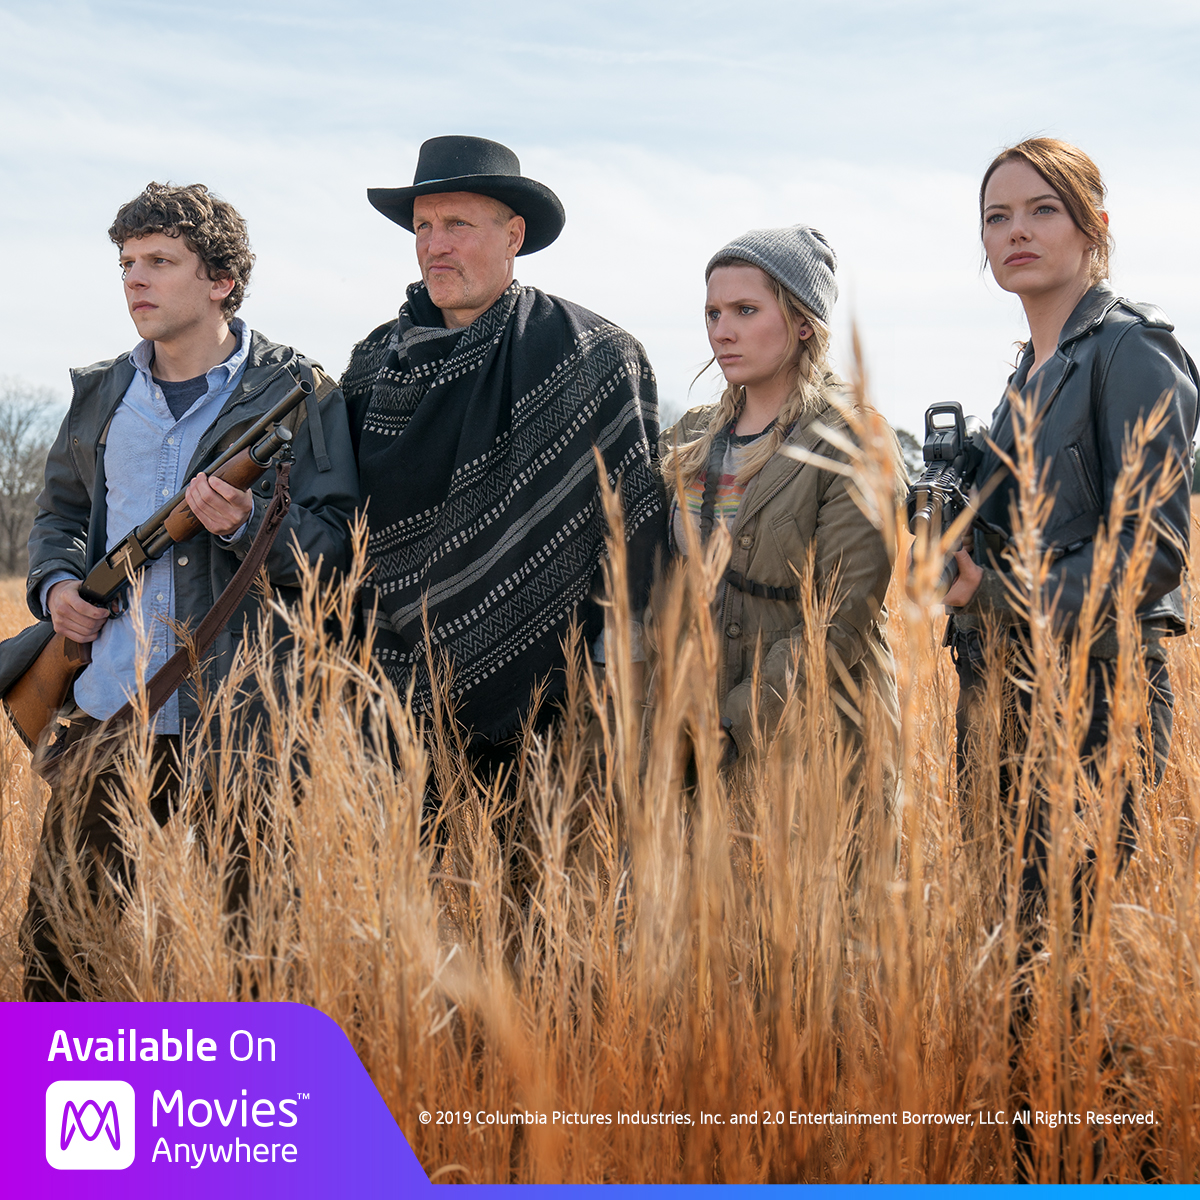 Don't miss the movie everyone's dying to see. #Zombieland: Double Tap is available now on @Movies_Anywhere! https://t.co/tPutqECEel https://t.co/20ySC4XZpb